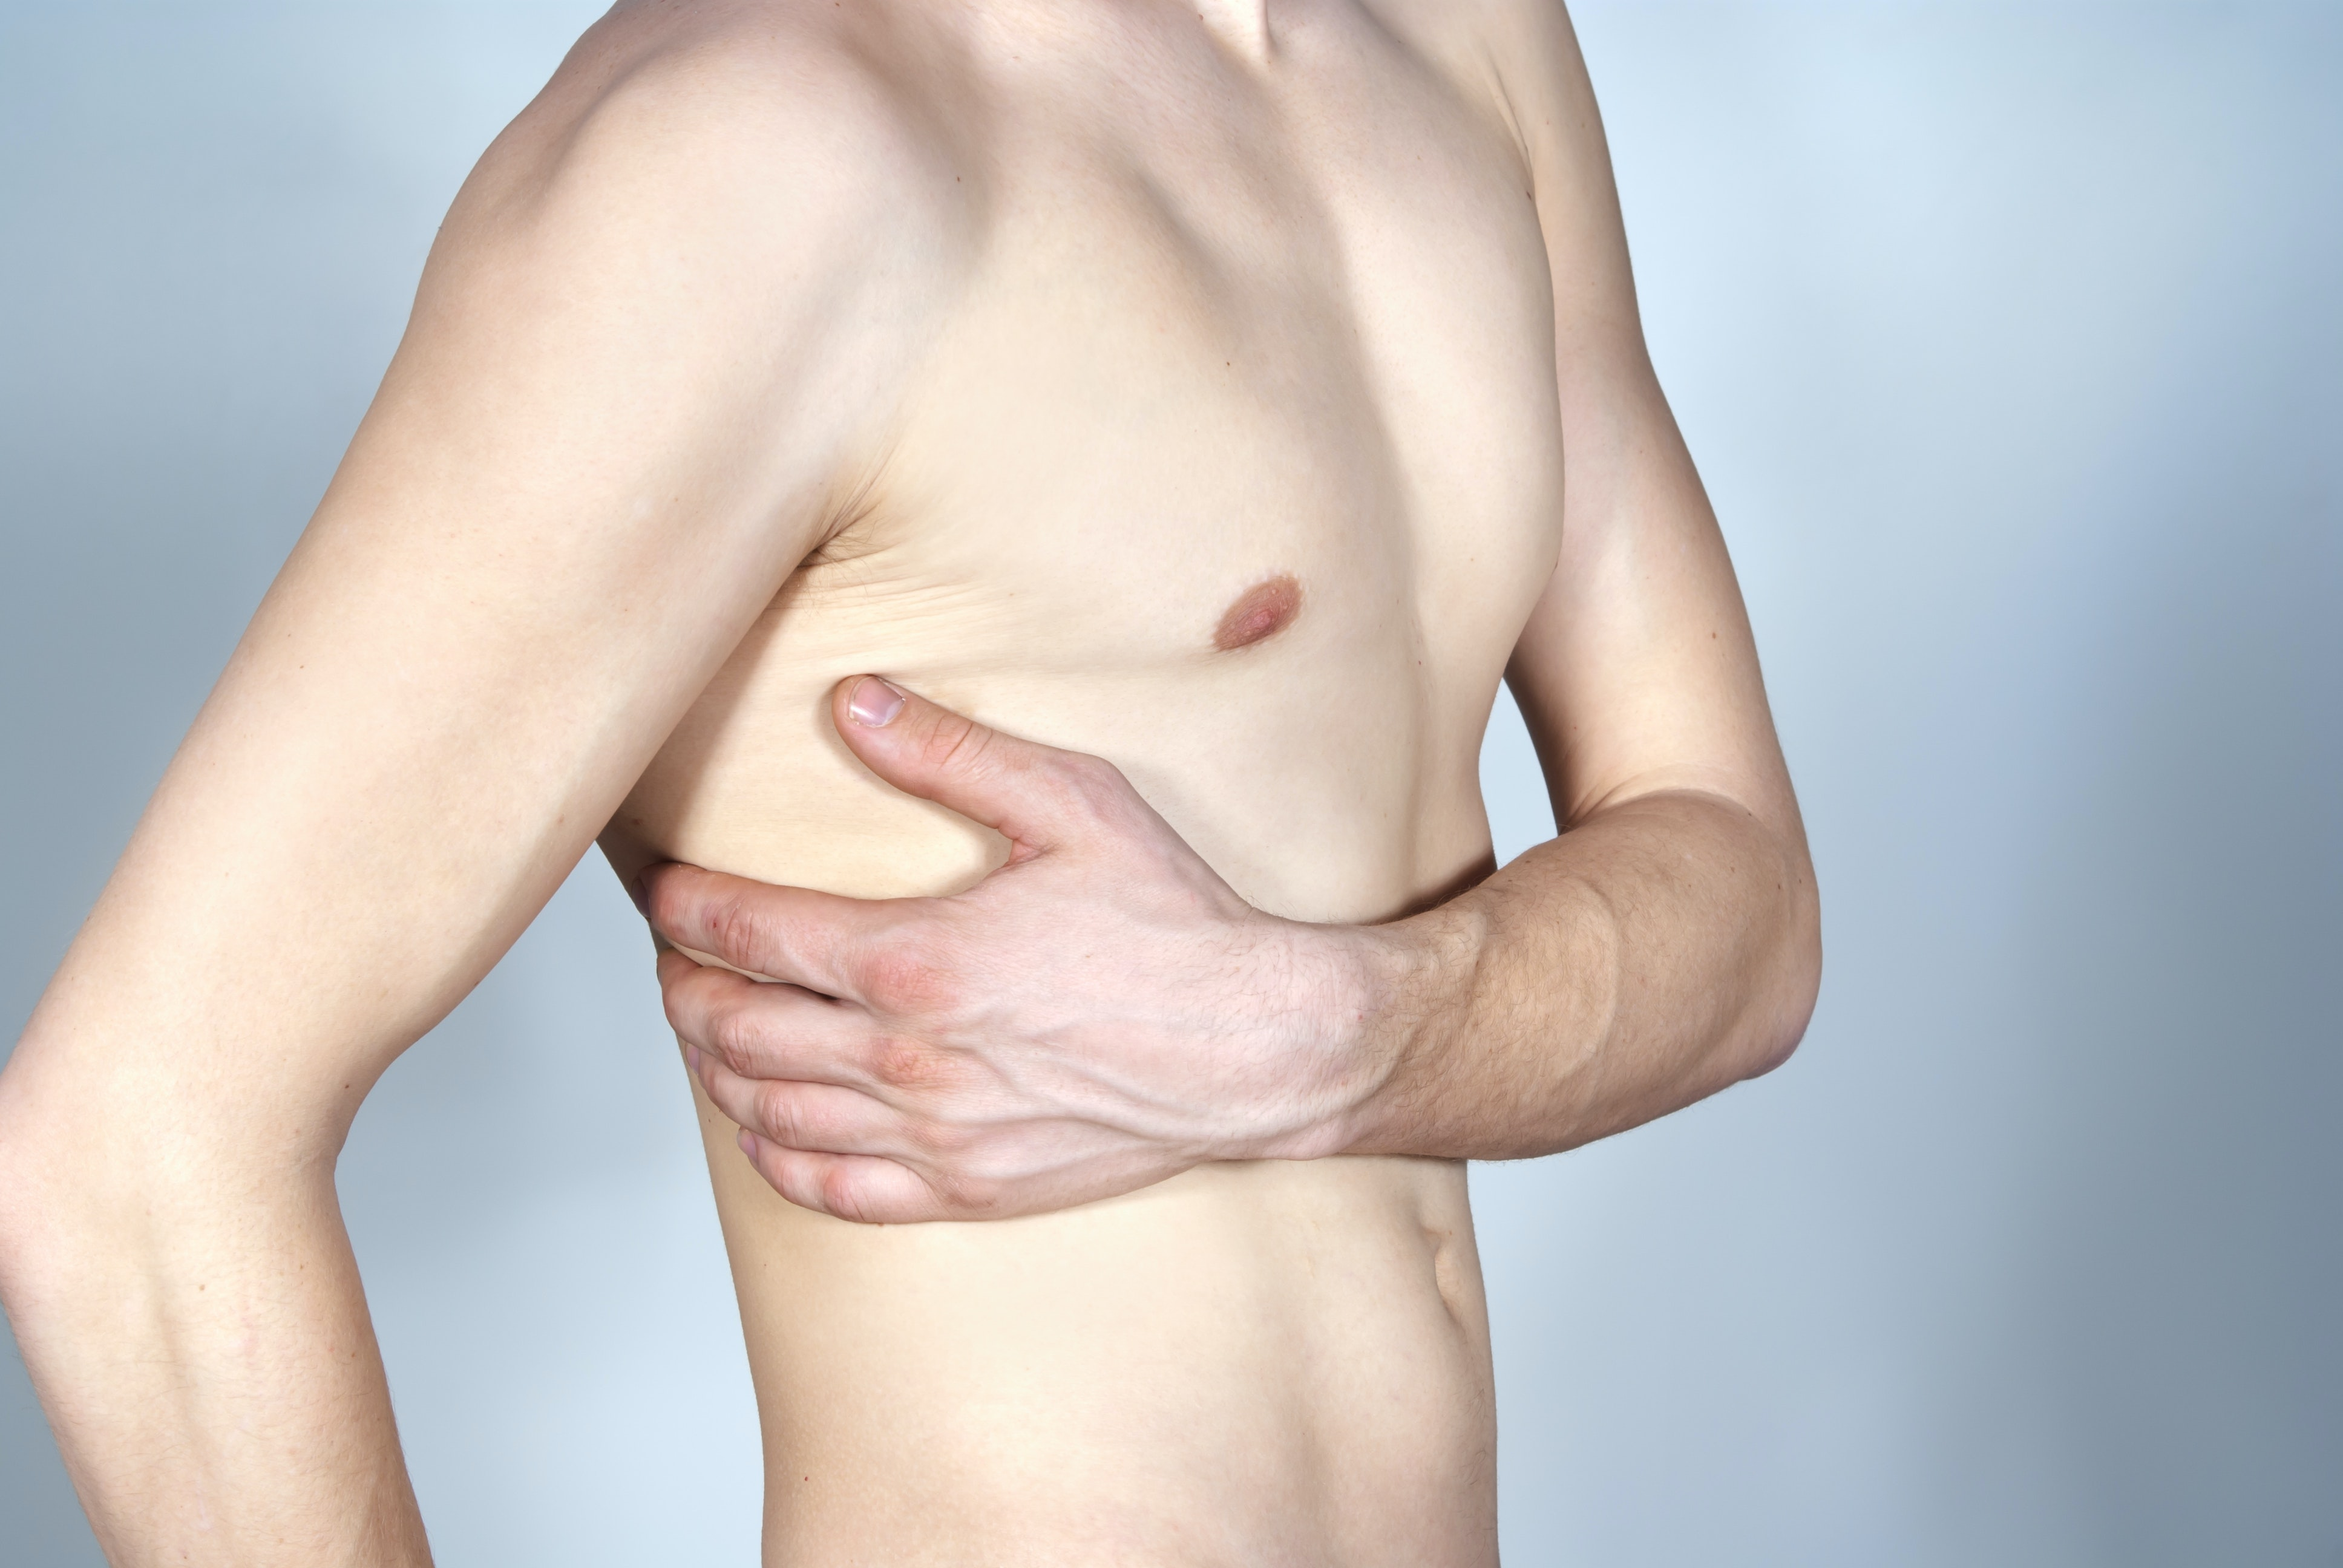 An image depicting a person suffering from mild rib pain symptoms